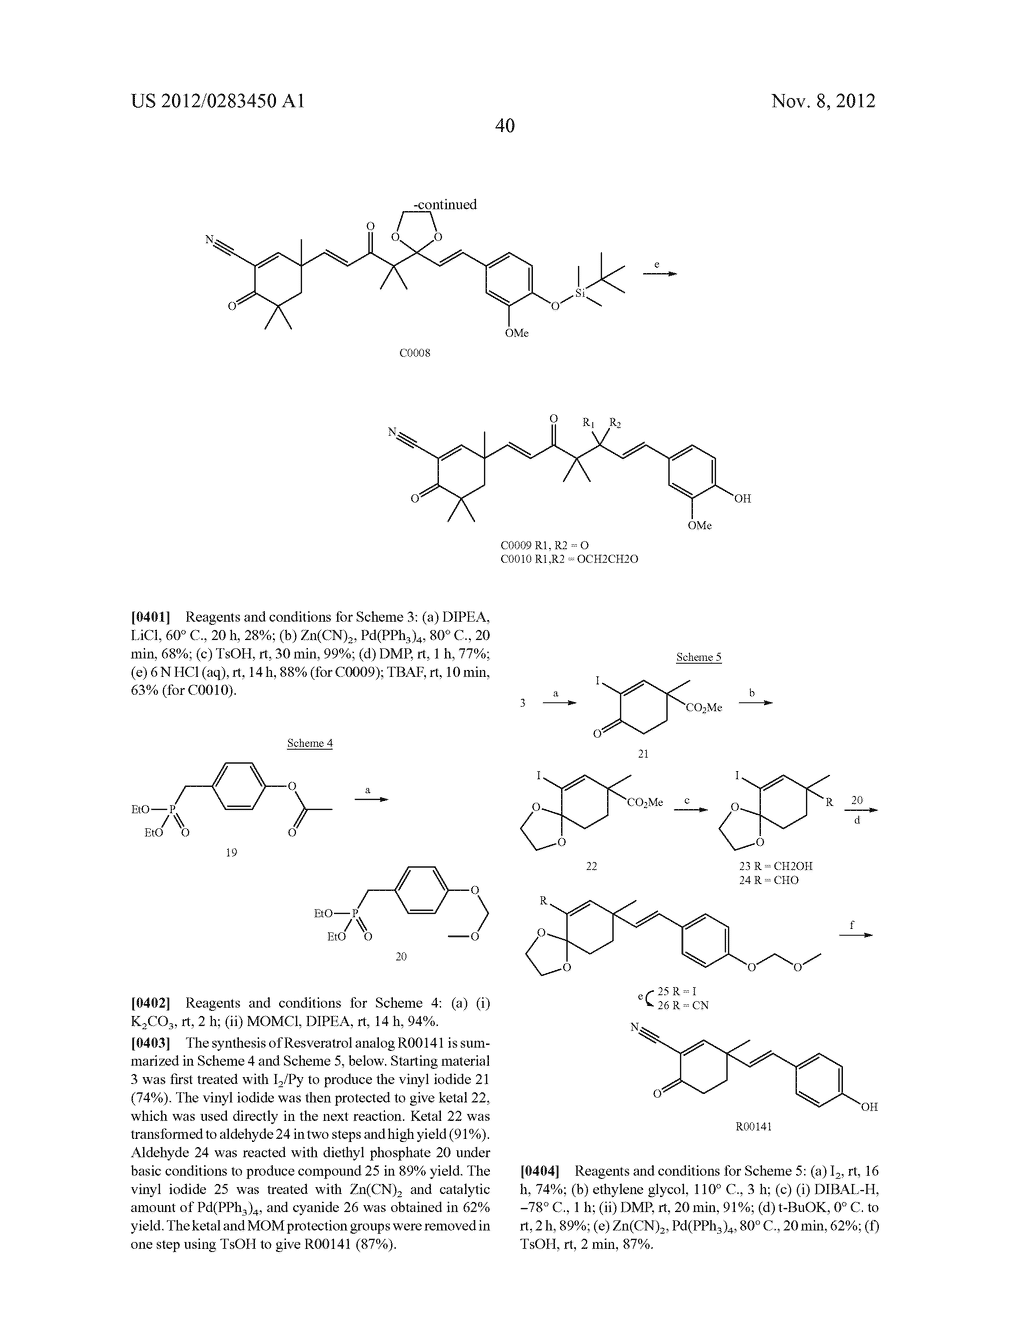 COMPOUNDS INCLUDING AN ANTI-INFLAMMATORY PHARMACORE AND METHODS OF USE - diagram, schematic, and image 65